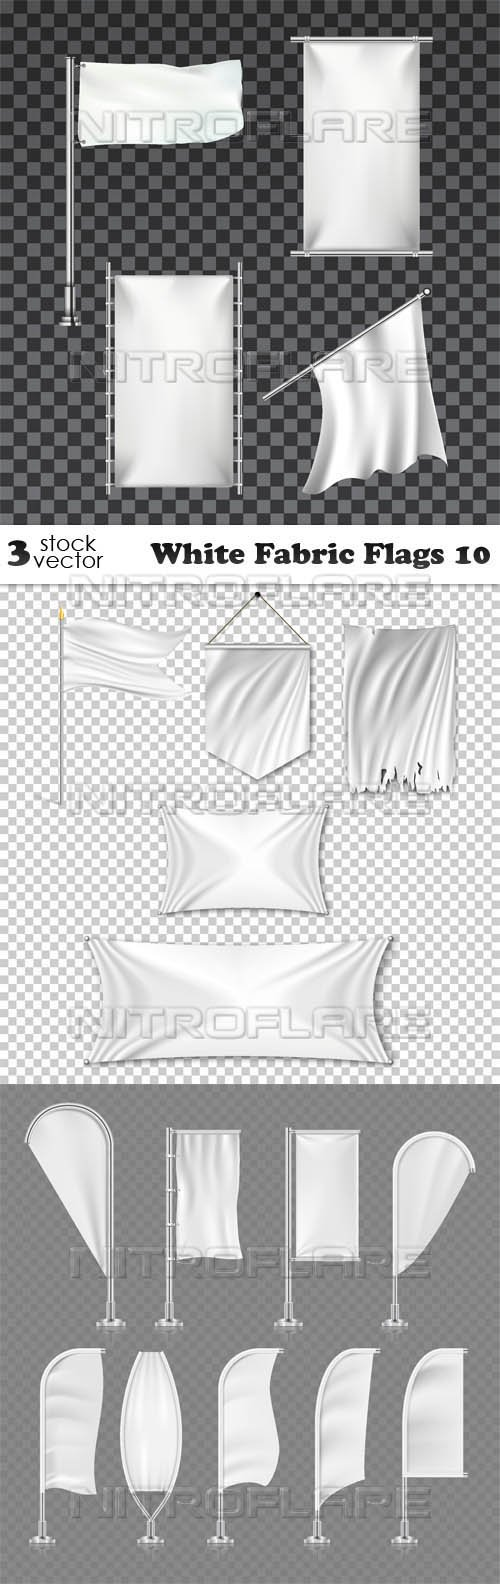 Vectors - White Fabric Flags 10